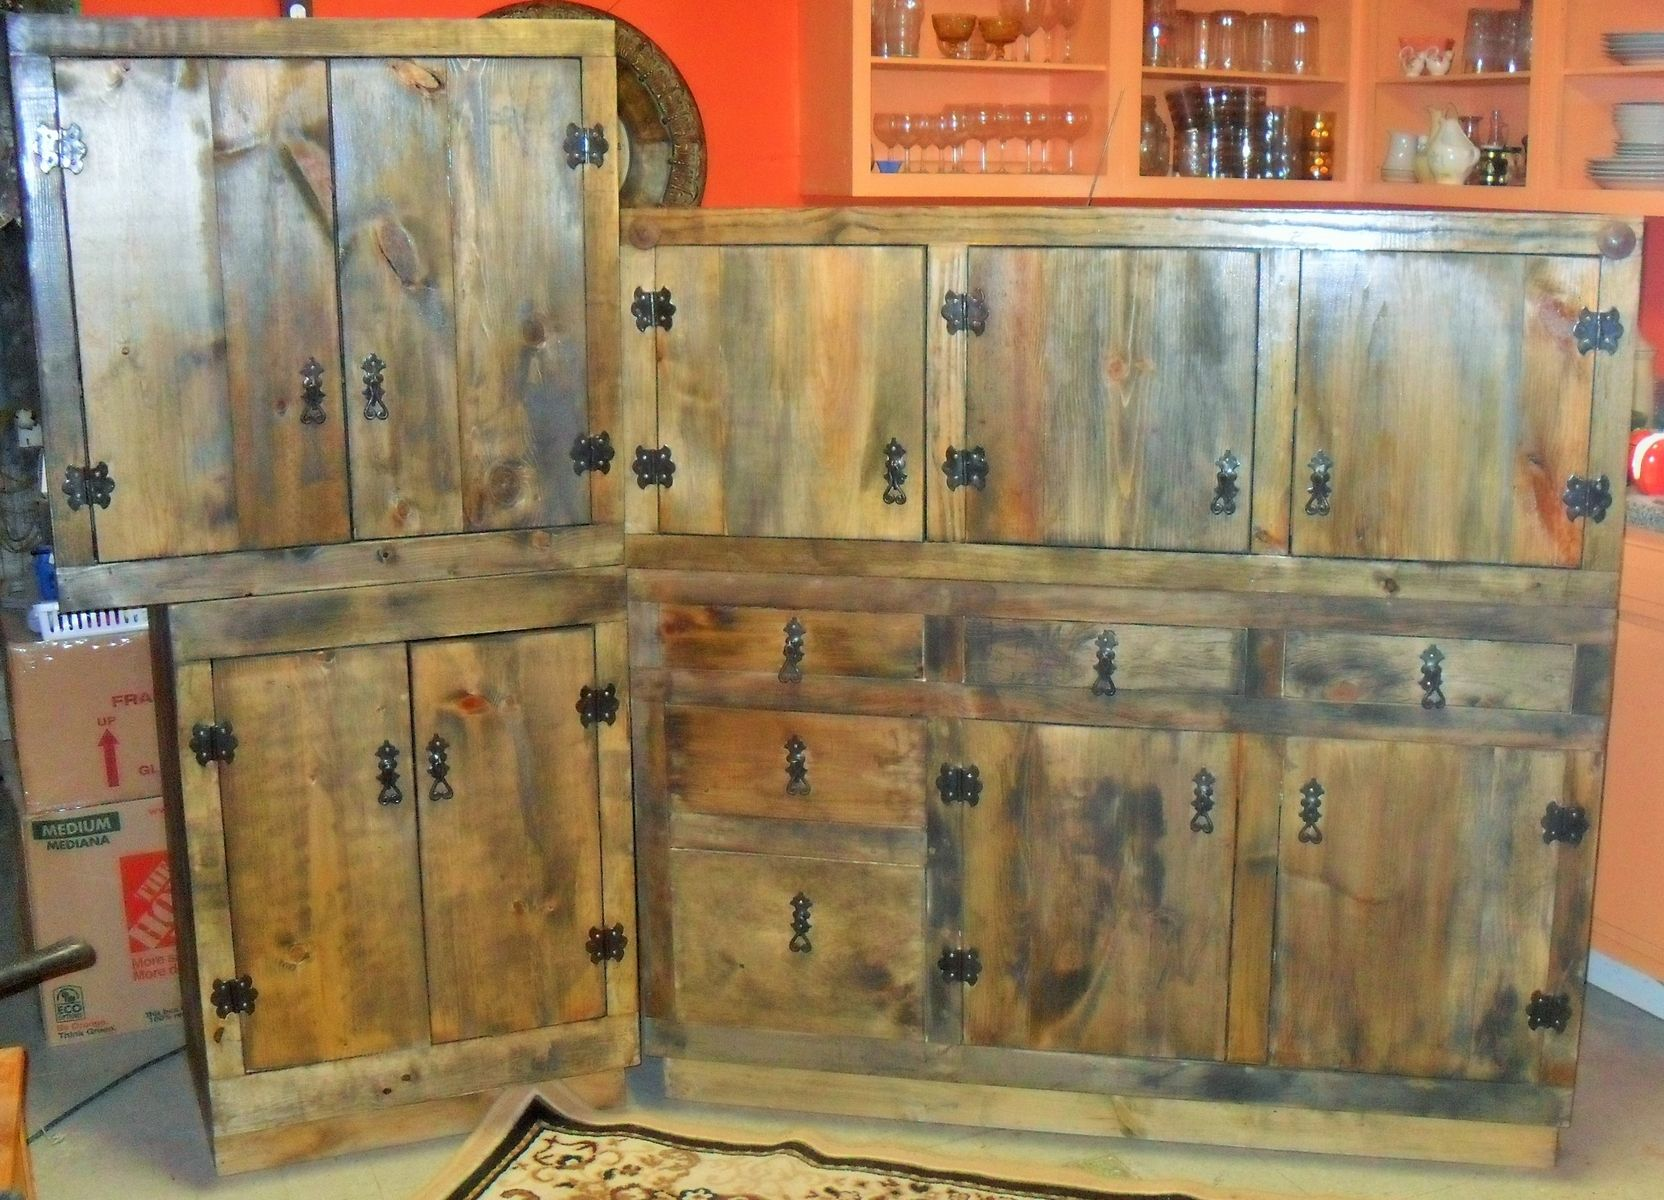 Hand made rustic kitchen cabinets by the bunk house studio - Custom made cabinet ...